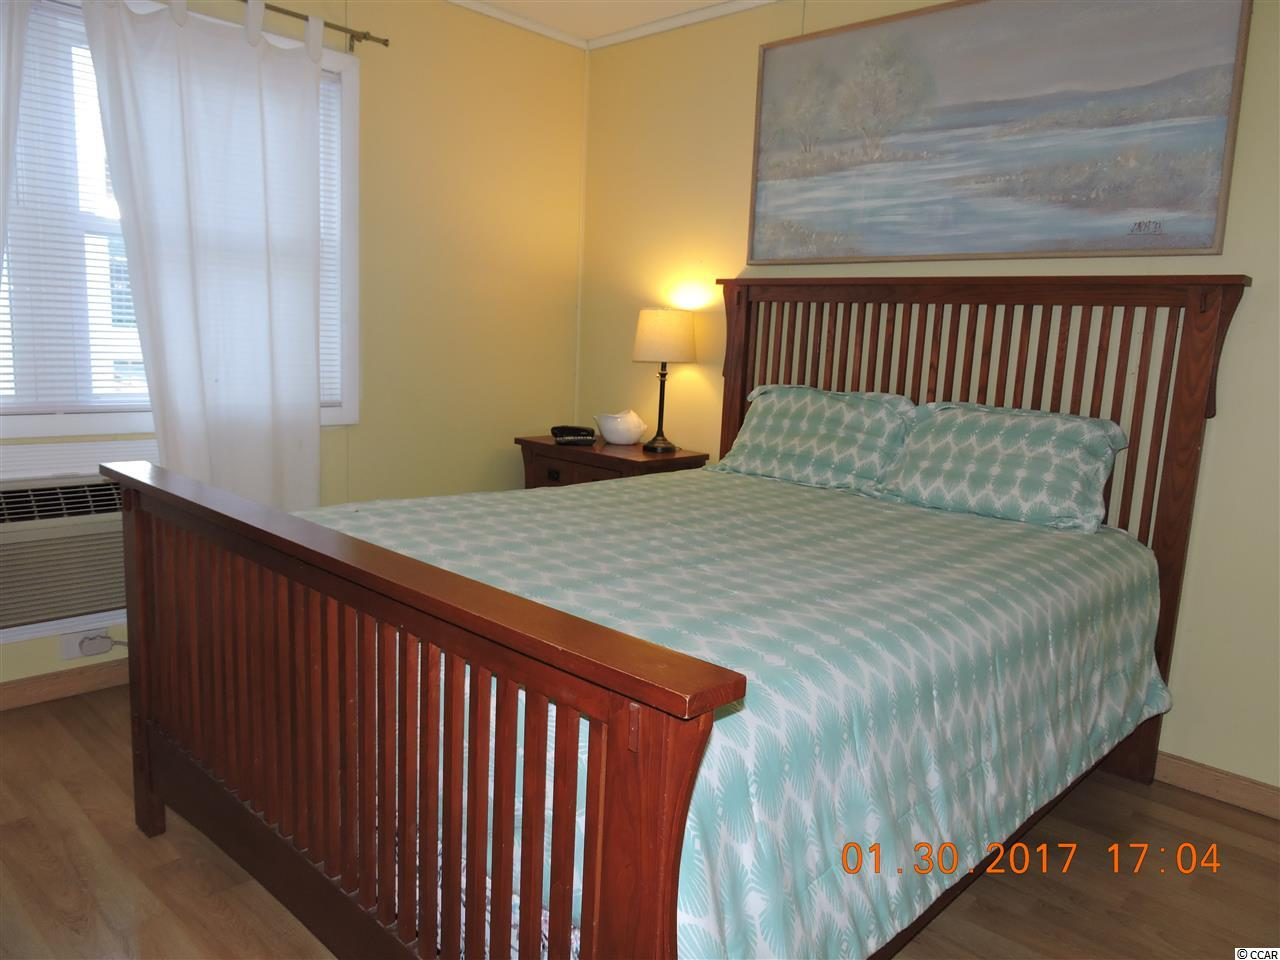 Additional photo for property listing at 3701 S Ocean Blvd 3701 S Ocean Blvd North Myrtle Beach, South Carolina 29582 United States